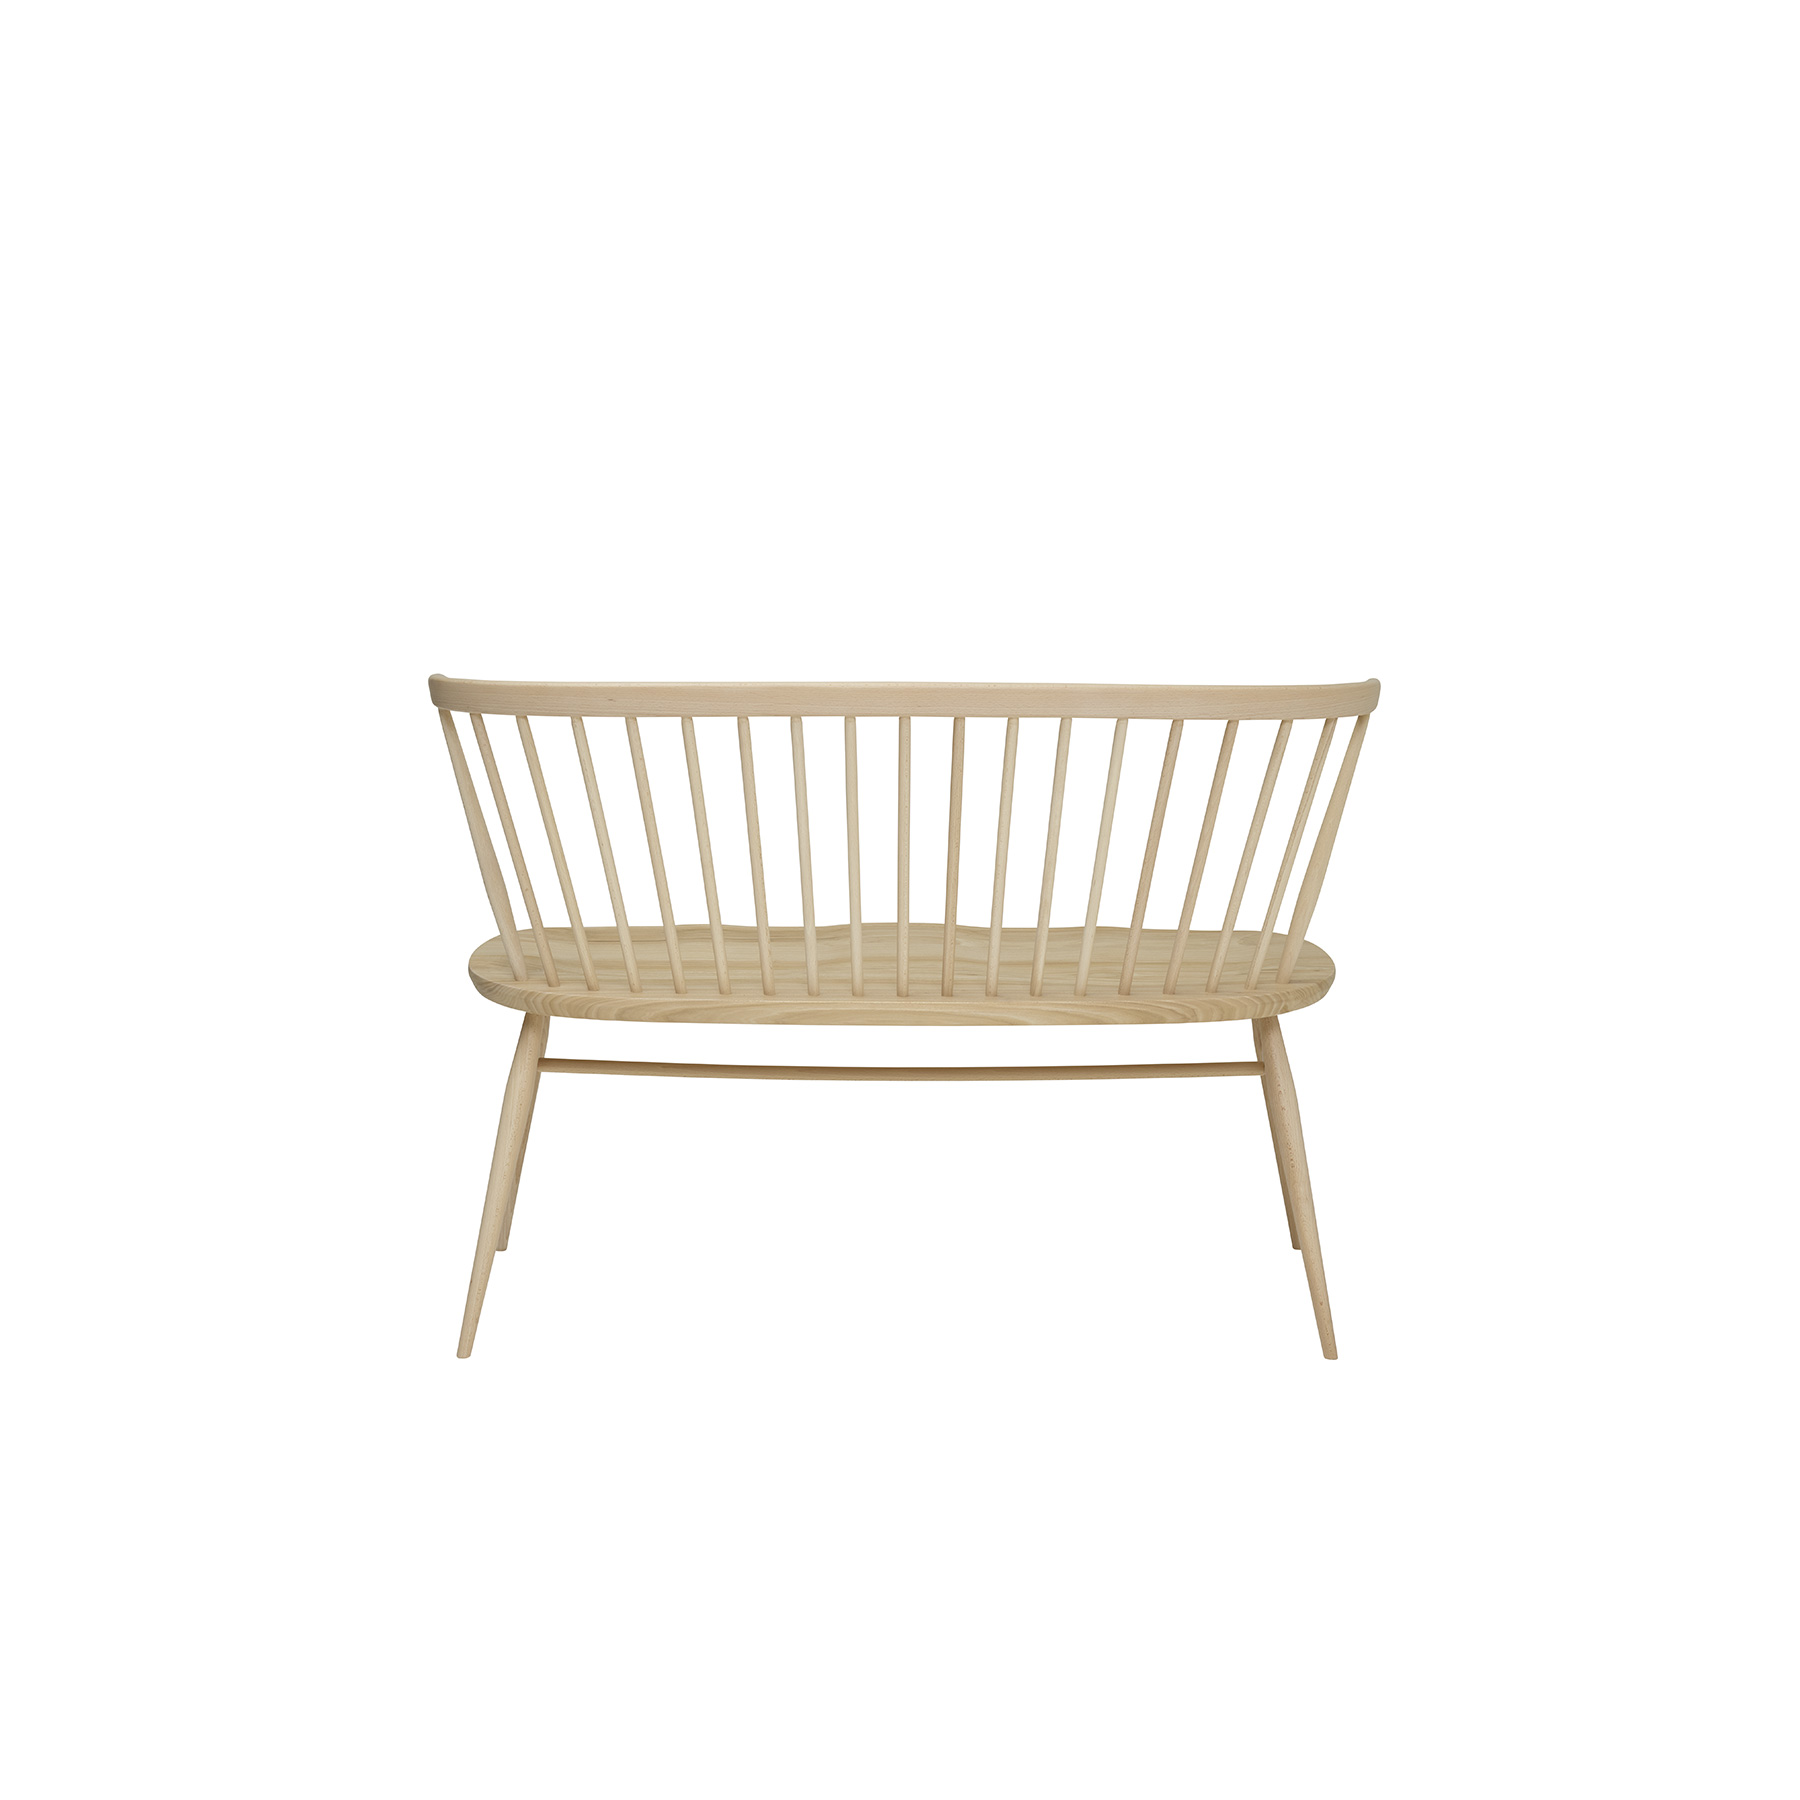 Originals Love Seat - <p>The Ercol Originals are pieces of timeless and classic design that never date or show their age. It is furniture that is as relevant and as functional now as it was when it was created in the 1950s and 1960s. This furniture was designed by Ercol's founder, Lucian Ercolani, who drew for his inspiration on the time-proven local design and craft in the Chiltern Hills around where he lived and built his first factory in 1920 in High Wycombe. Using the strength of beech and the beauty of elm he carried this definition on into a huge variety of dining, kitchen, and school chairs and then extended the idiom into the low easy chair range epitomised by the 206 armchair and the studio couch. The beauty of the colour and the grain of the elm took Lucian on to use elm for the tables and cabinets of the Originals and the following Windsor range. As a progression of the Windsor chair, this love seat offers a large, outward shaped ash seat, moulded for comfort. The bent solid ash chair bow is an attractive and unique shape, reminiscent of its Windsor heritage. Turned lists that structure the back of this seat for two and tapered legs give this piece a distinctive Ercol feel. Coupled with the plank table or used as a standalone piece, this unique love seat will be the focus of your living space. This love seat will be finished in your choice of a variety lacquer finishes or in your choice of a selection of painted colour finishes, which protects the timber as well as fitting in with your style and decor. Otherwise, opt for a graded colour finish to create a contemporary edge to your home. To celebrate our 100th anniversary the love seat, designed by Ercol's founder, Lucian Ercolani, will feature an exclusive centenary logo during our anniversary year 2020.</p>  | Matter of Stuff